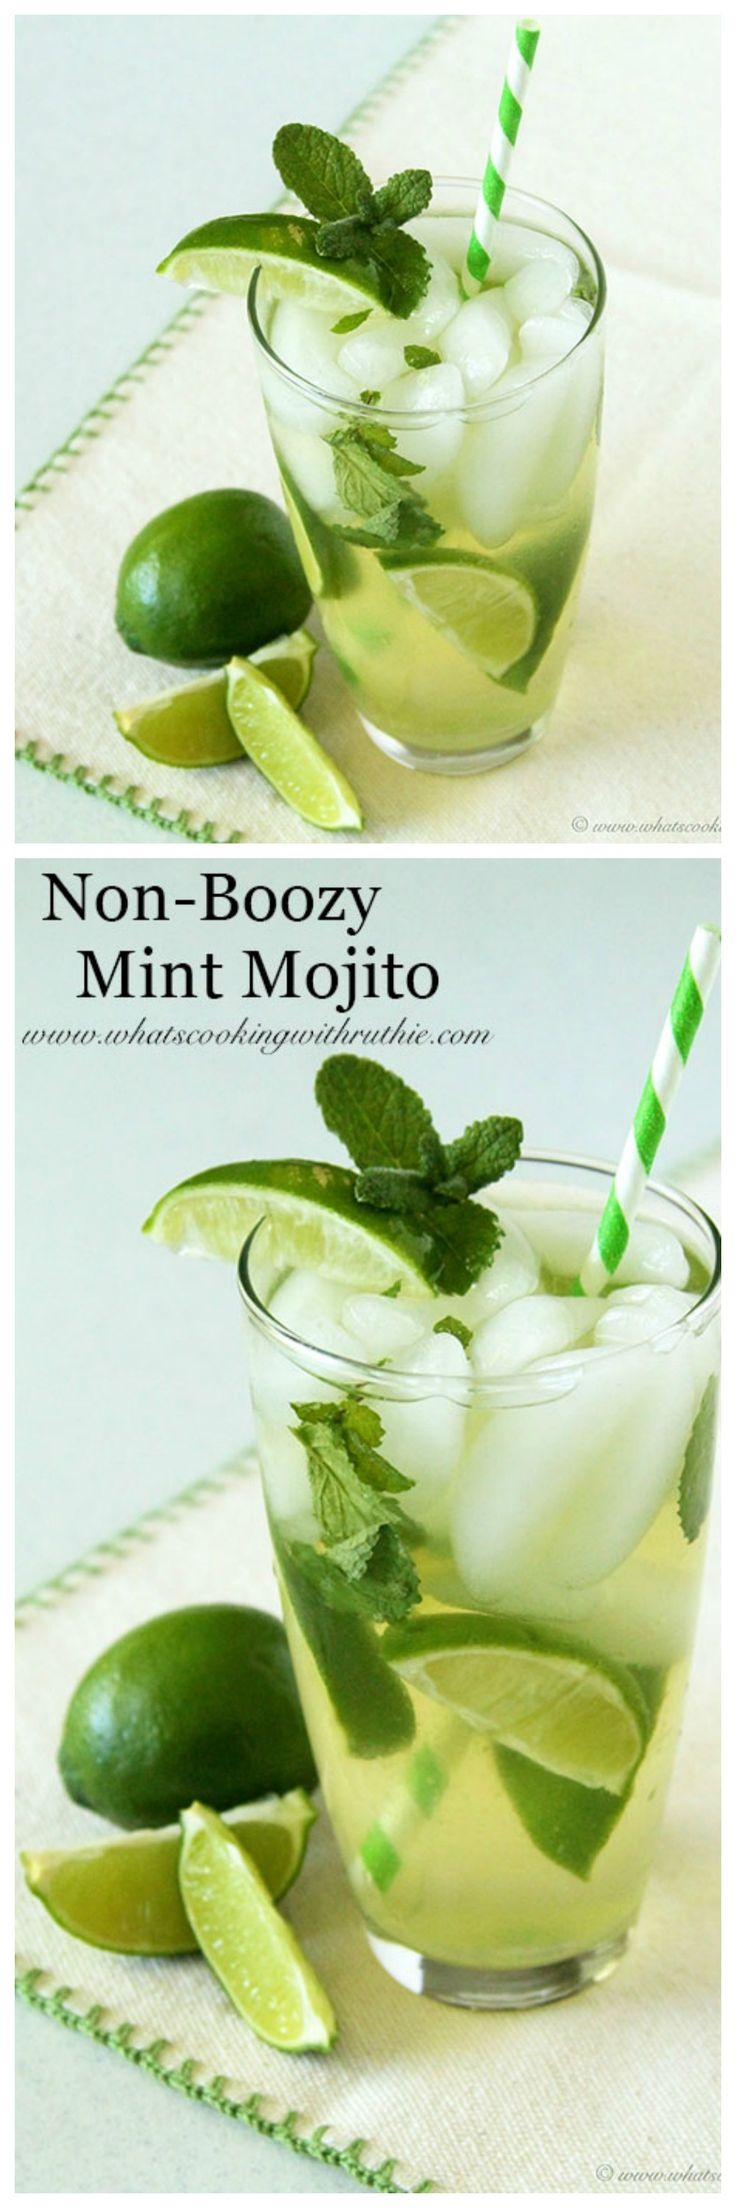 Non-Boozy Mint Mojito on www.cookingwithruthie.com will be the hit of any party!